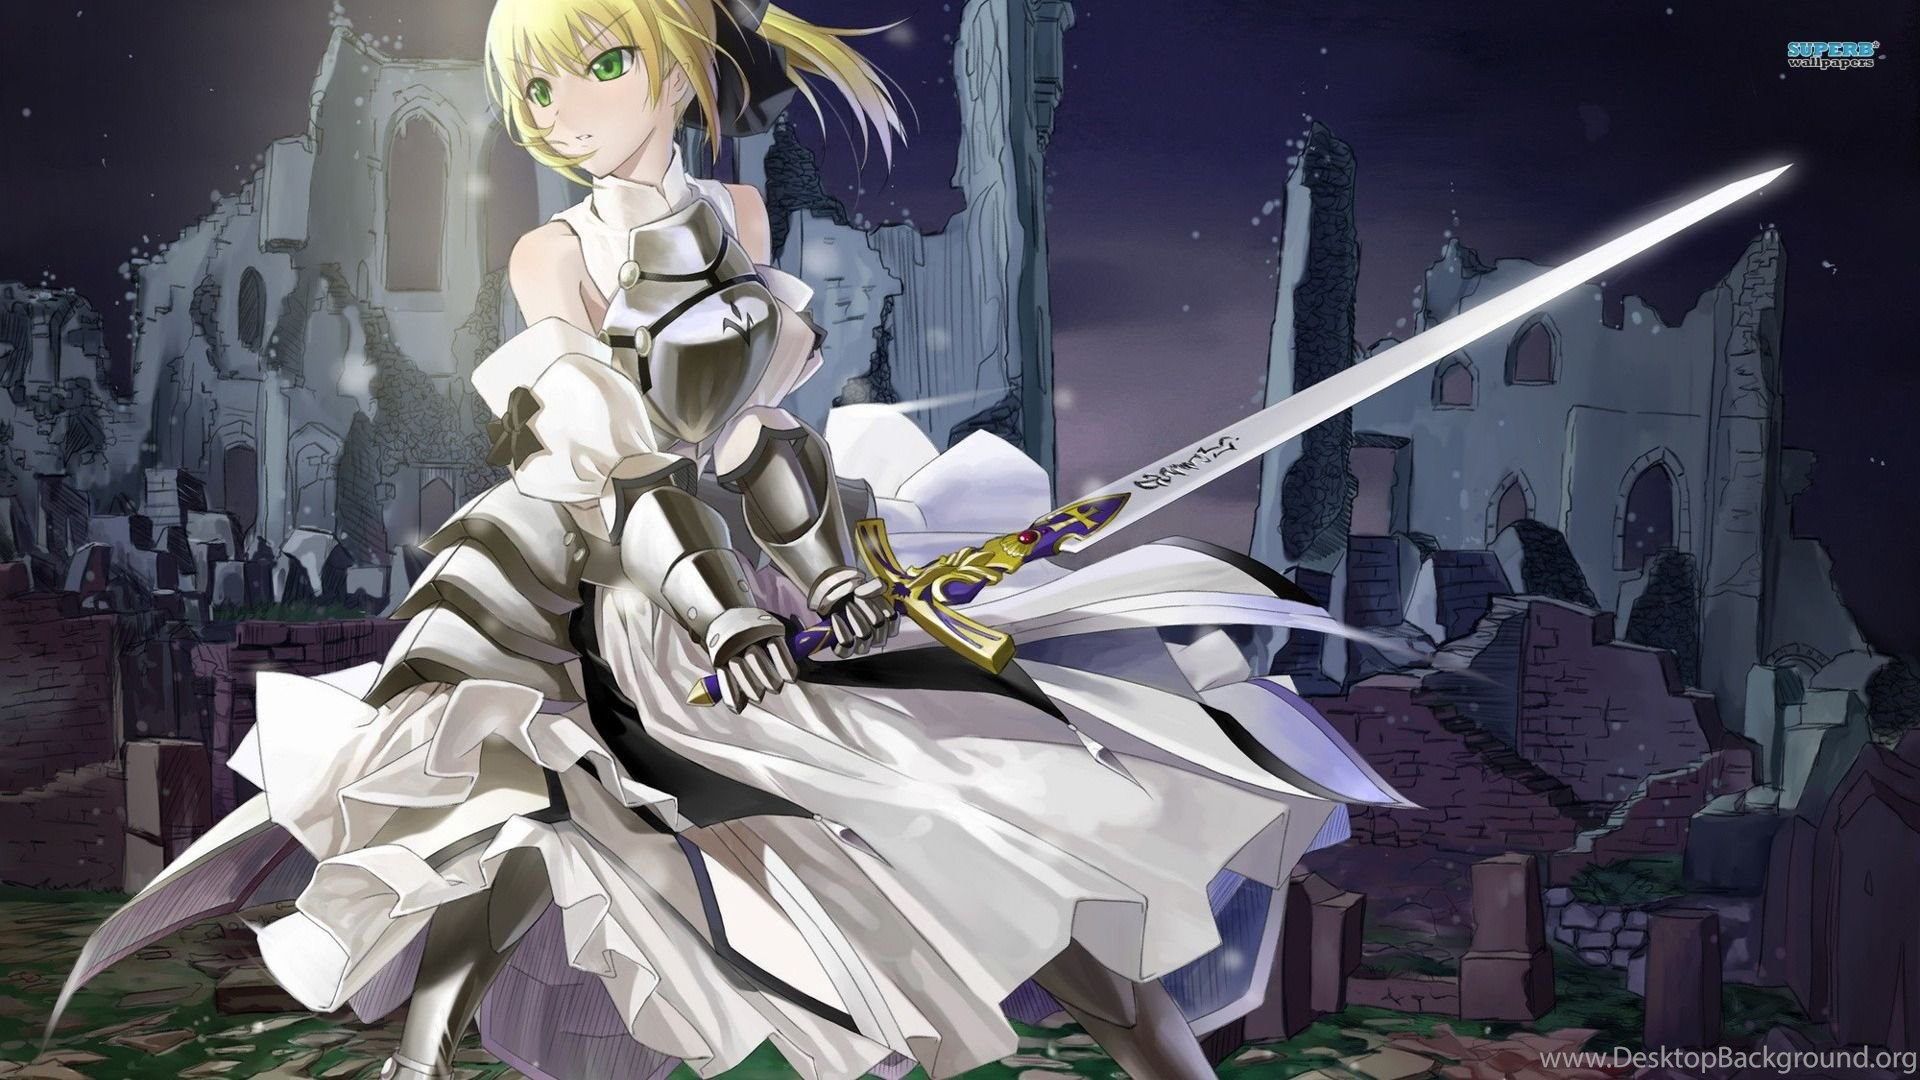 Saber Fate Stay Night Wallpapers Anime Wallpapers Desktop Background